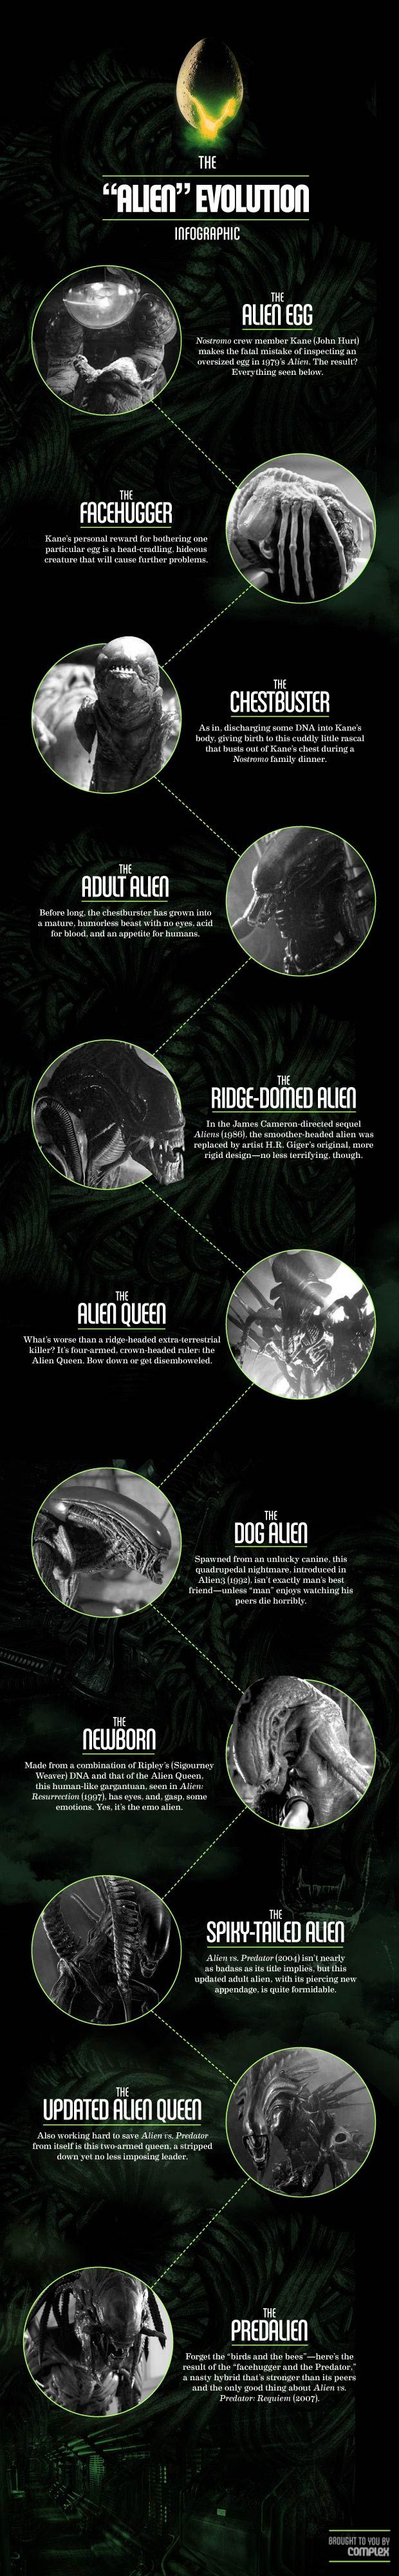 The-Alien-Evolution-infographic(Something to Know)